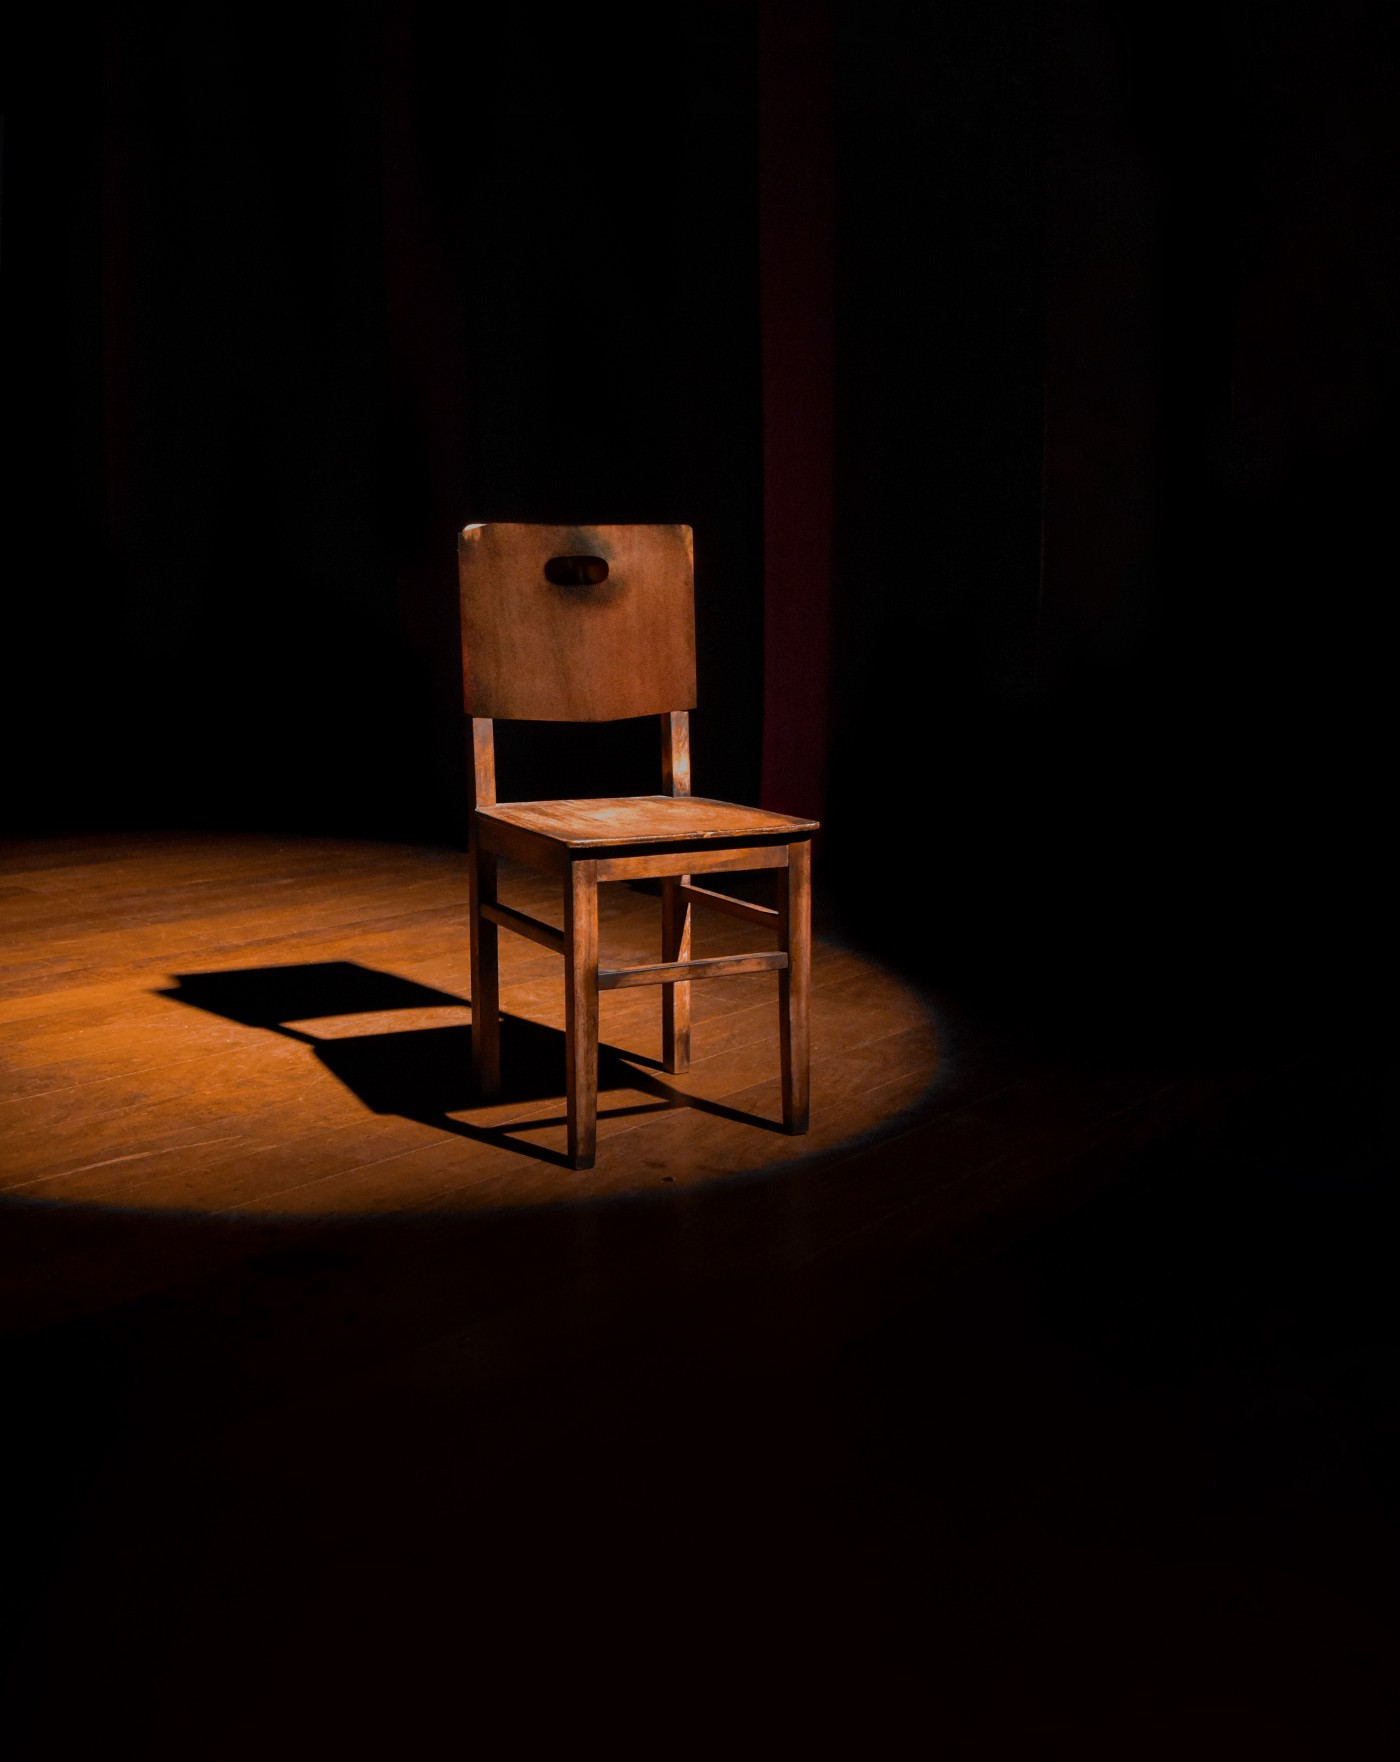 very used wood chair, very straight lines, on a dark stage with spotlight